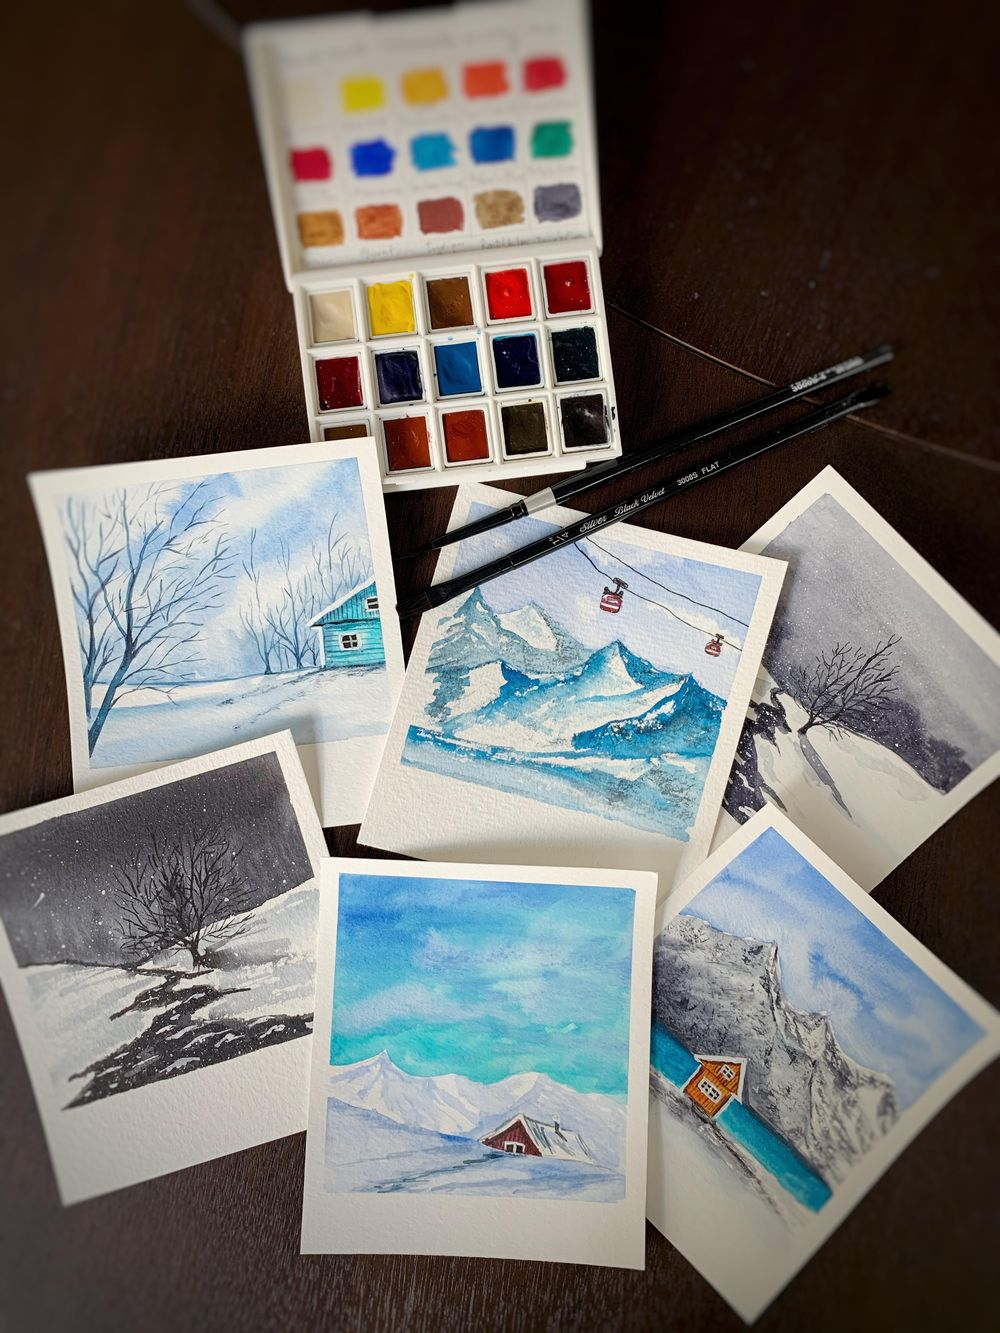 Snowy Polaroid Watercolour Paintings - image 1 - student project